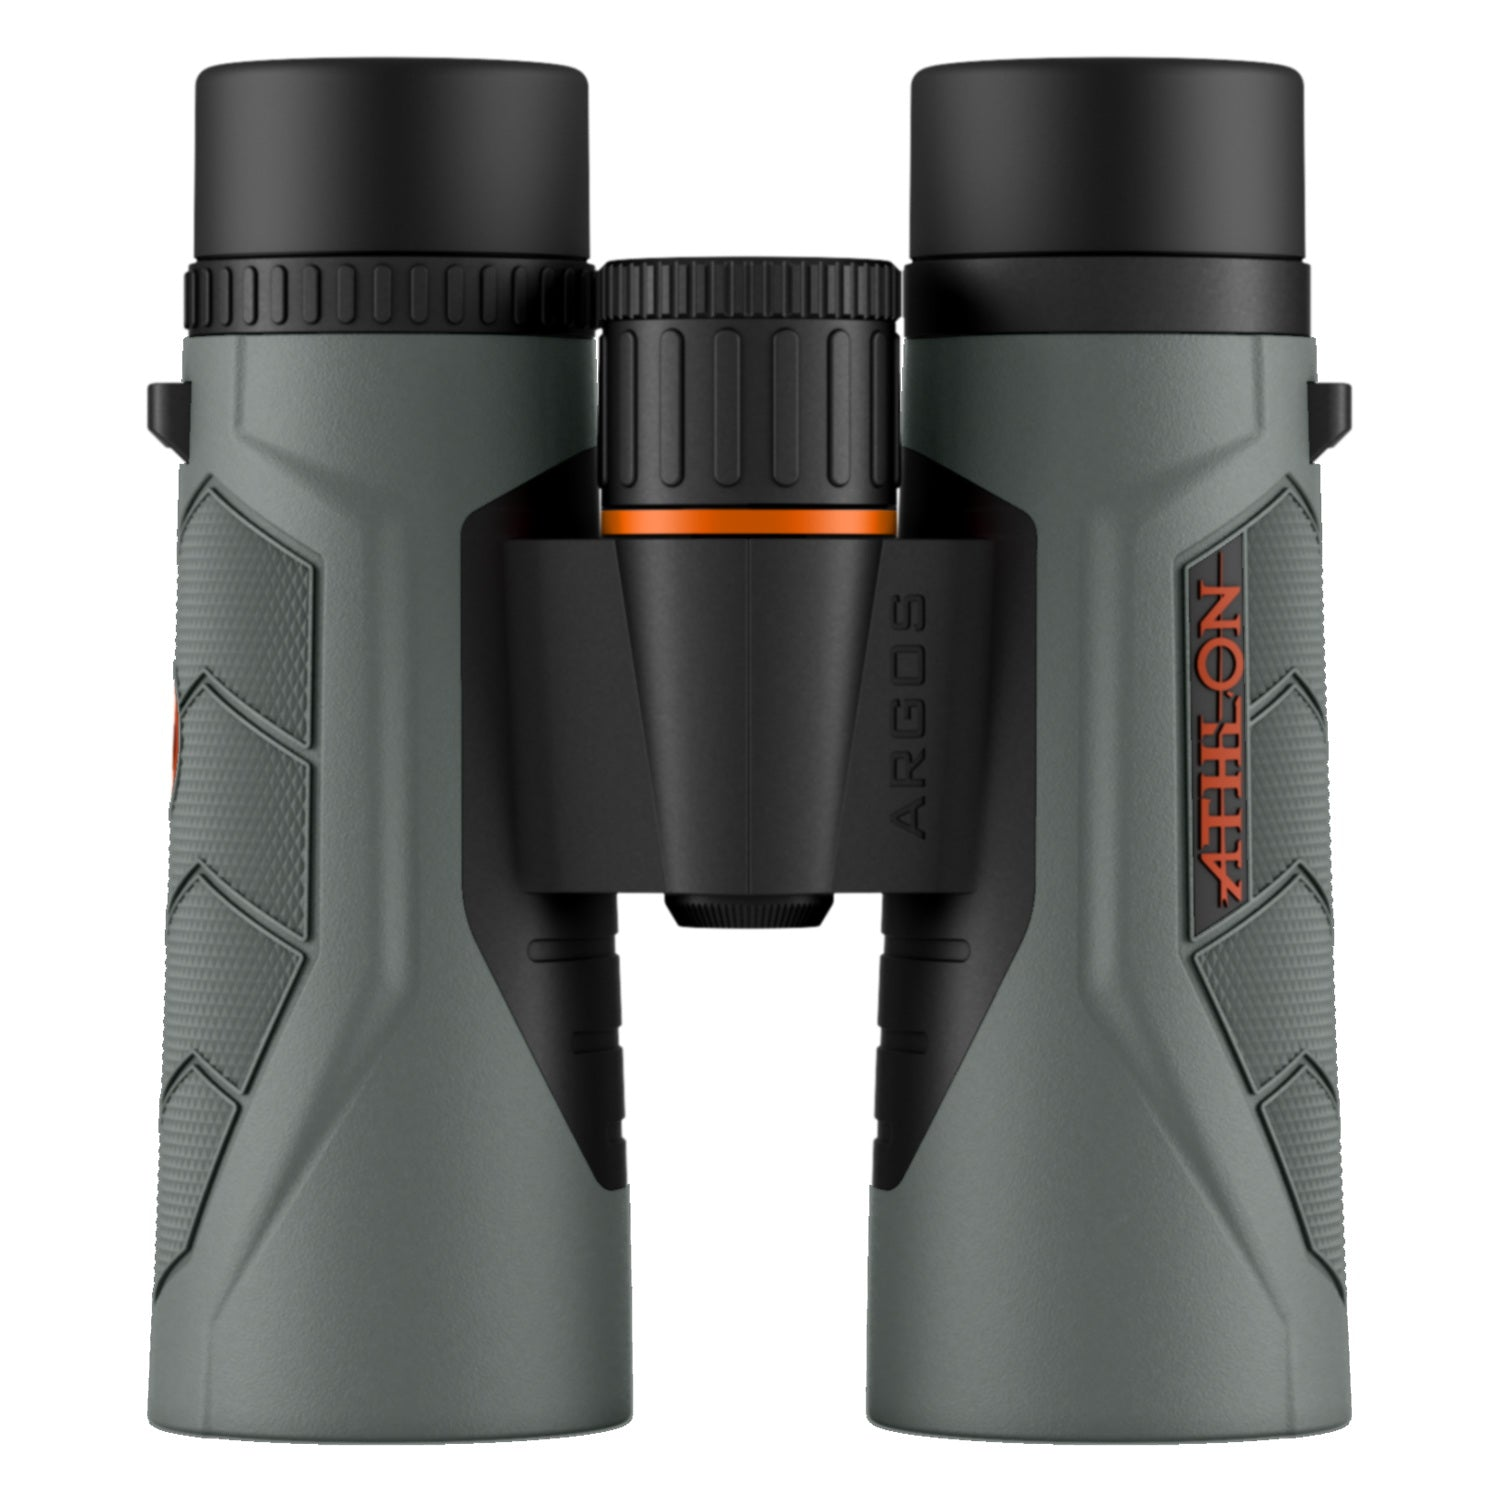 Athlon Argos G2 10x42mm HD Binoculars